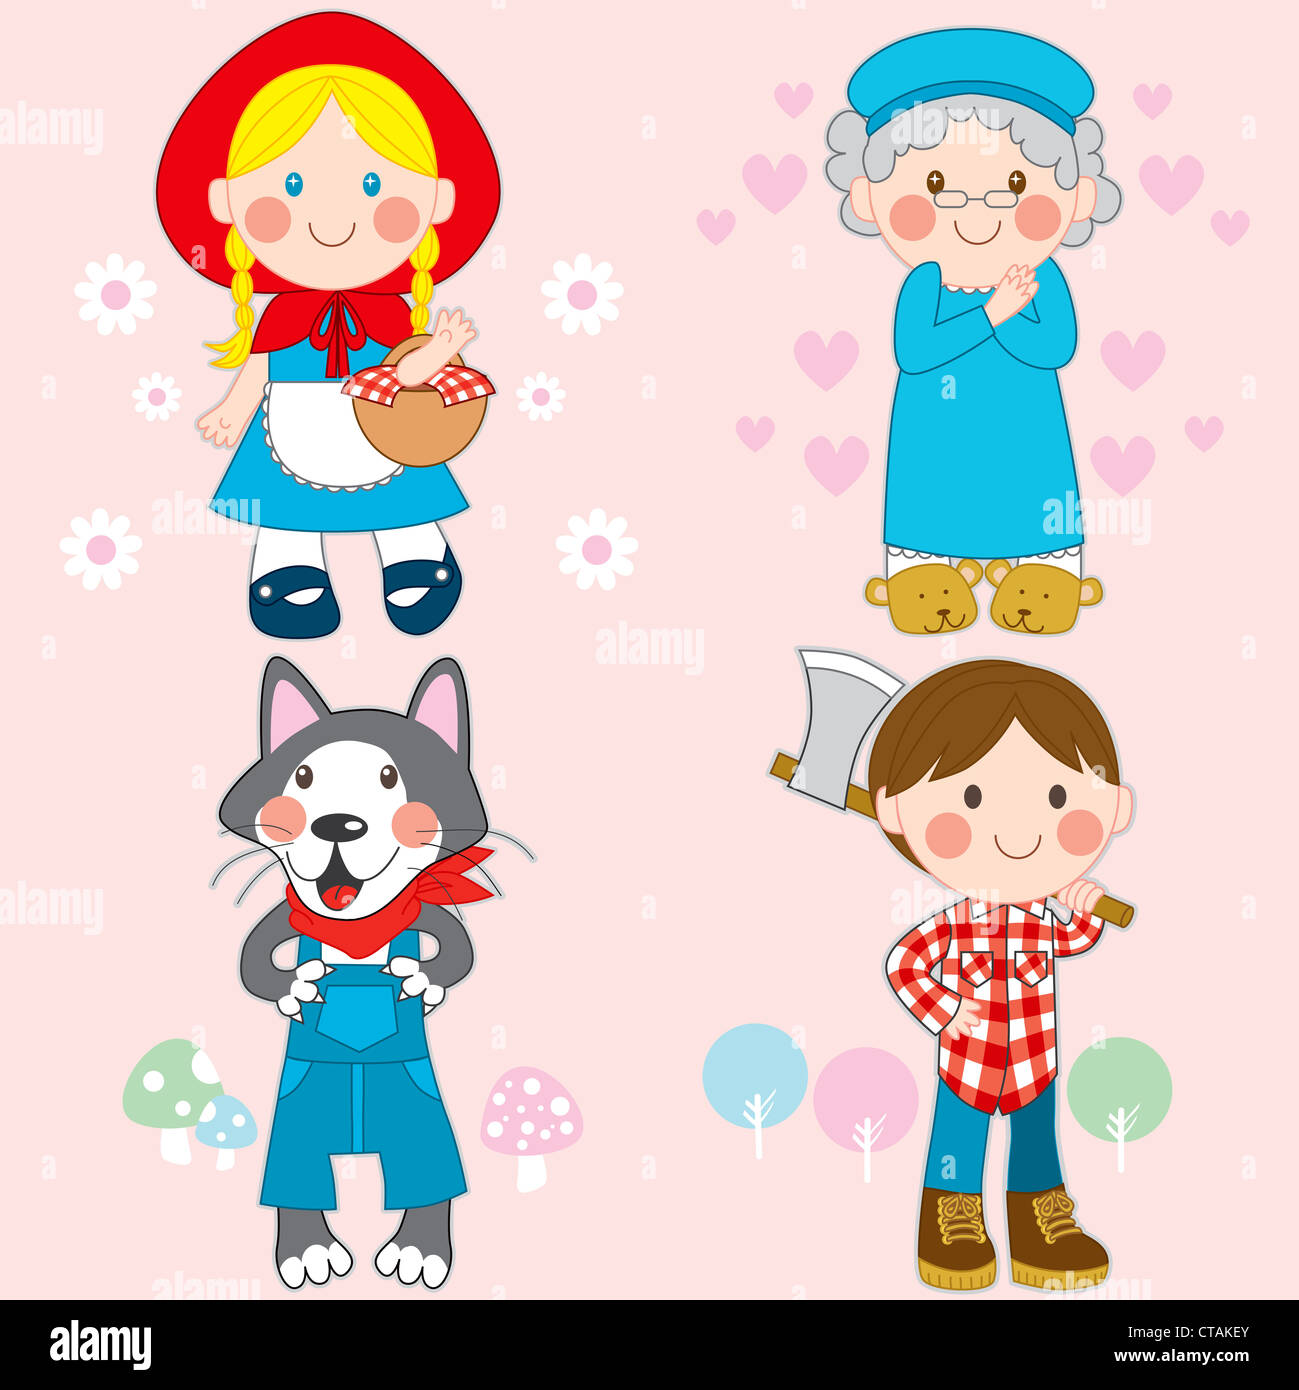 Set Of Characters From Little Red Riding Hood Fairy Tale Stock